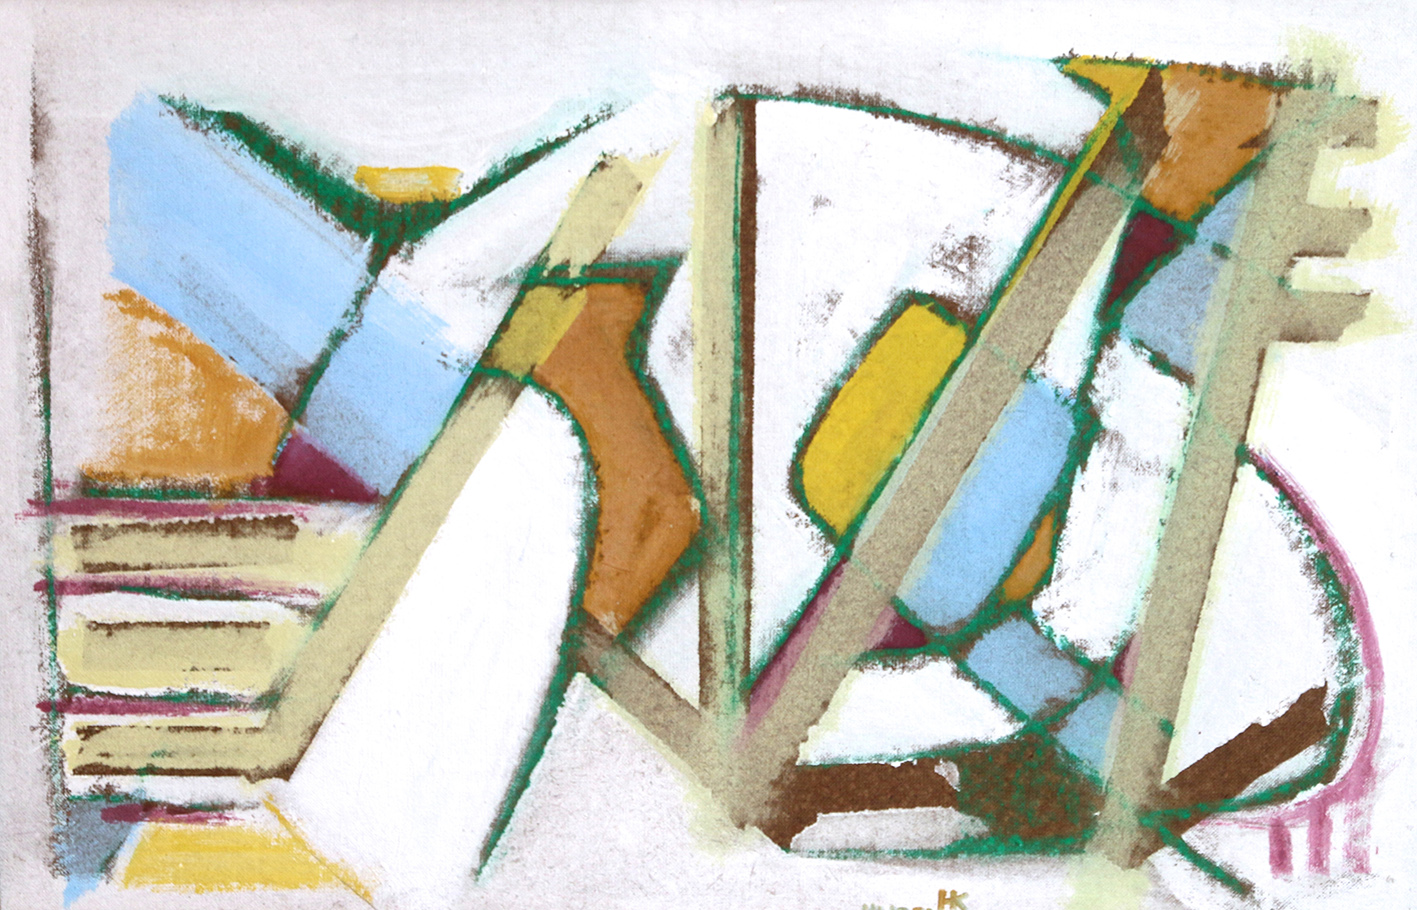 Hans Kinder | Reflection | 1953 | mixed media on cardboard | monogrammed and dated | 53 x 82